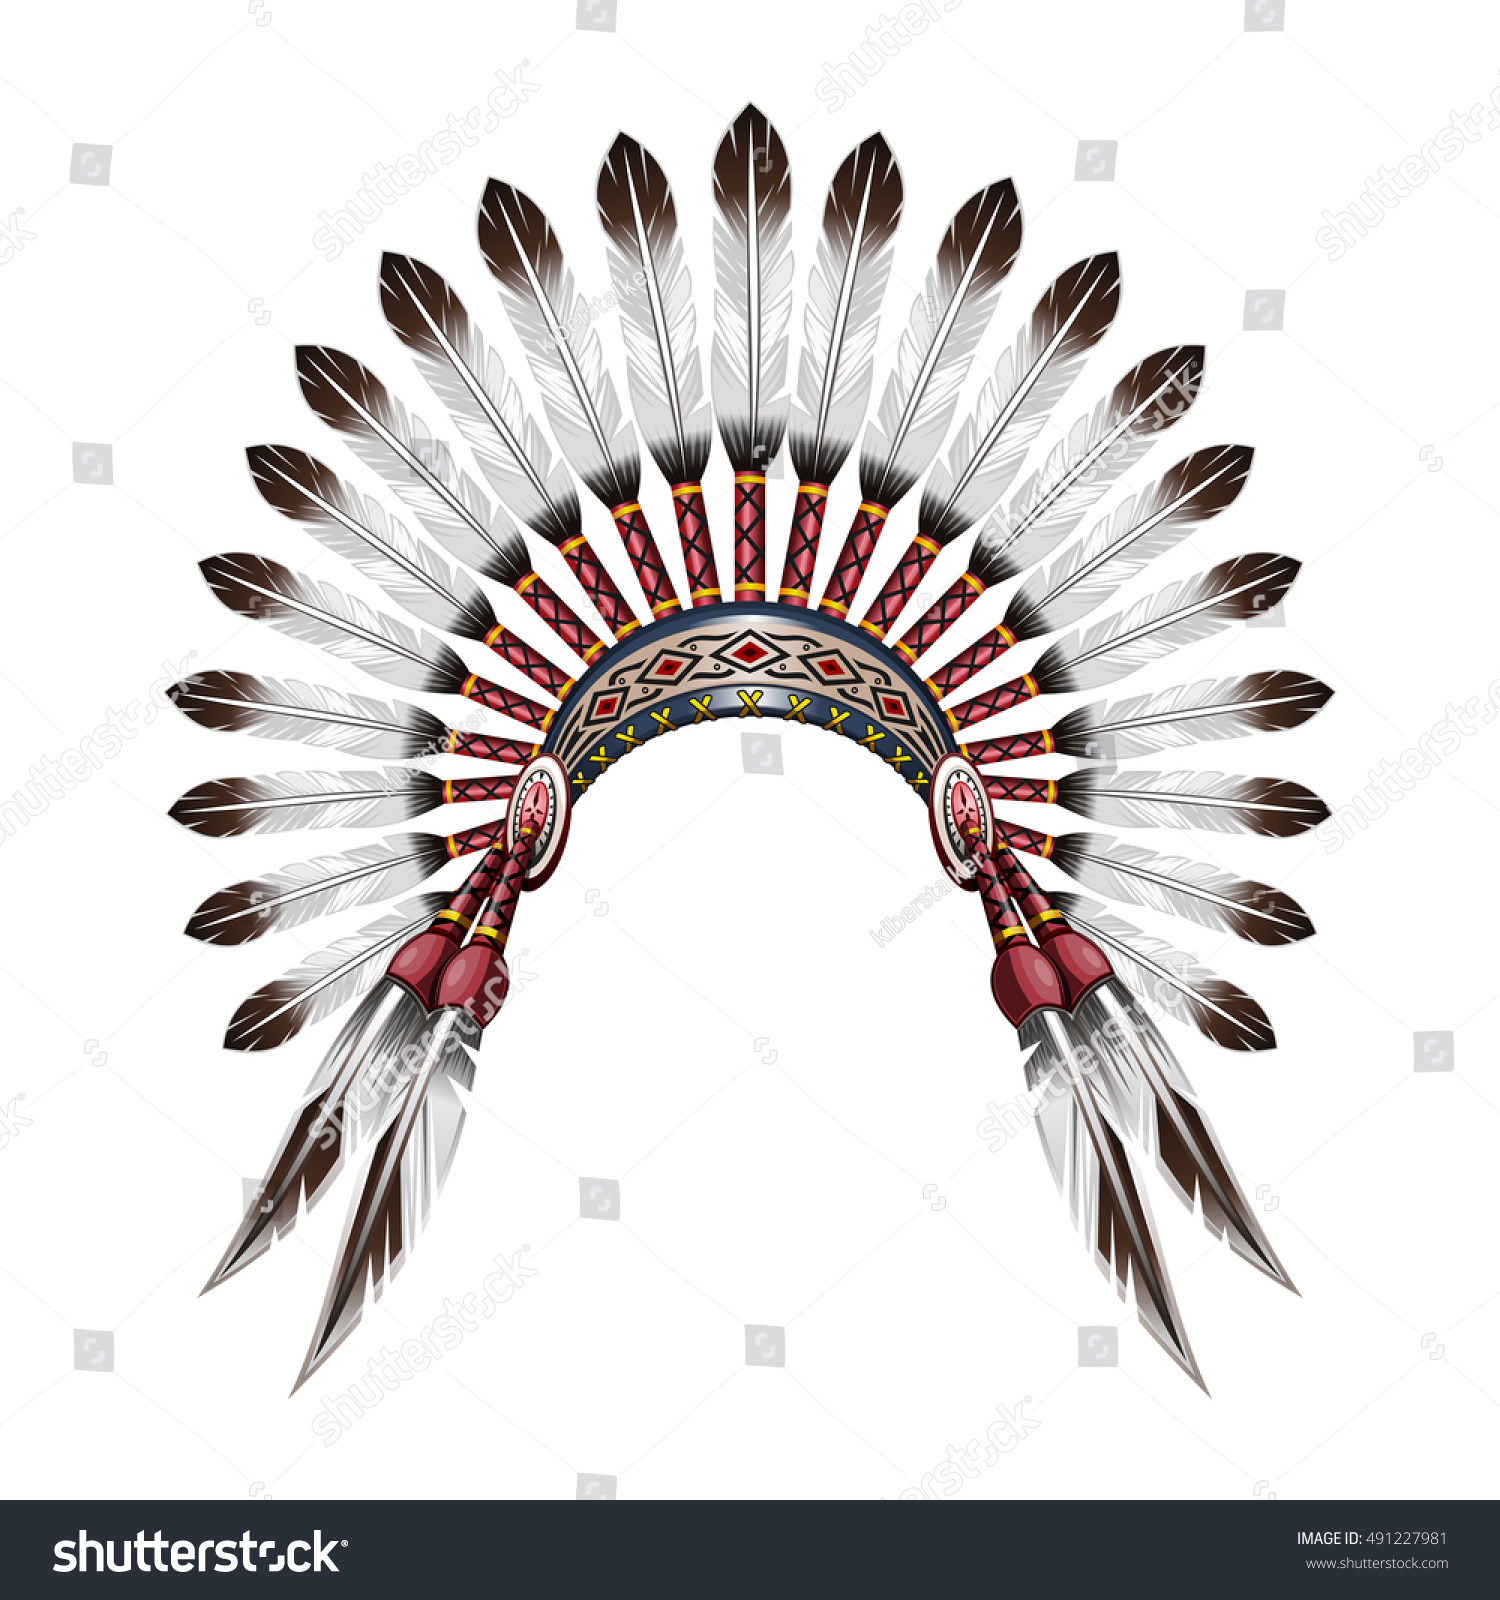 indian feather background feathers - photo #37